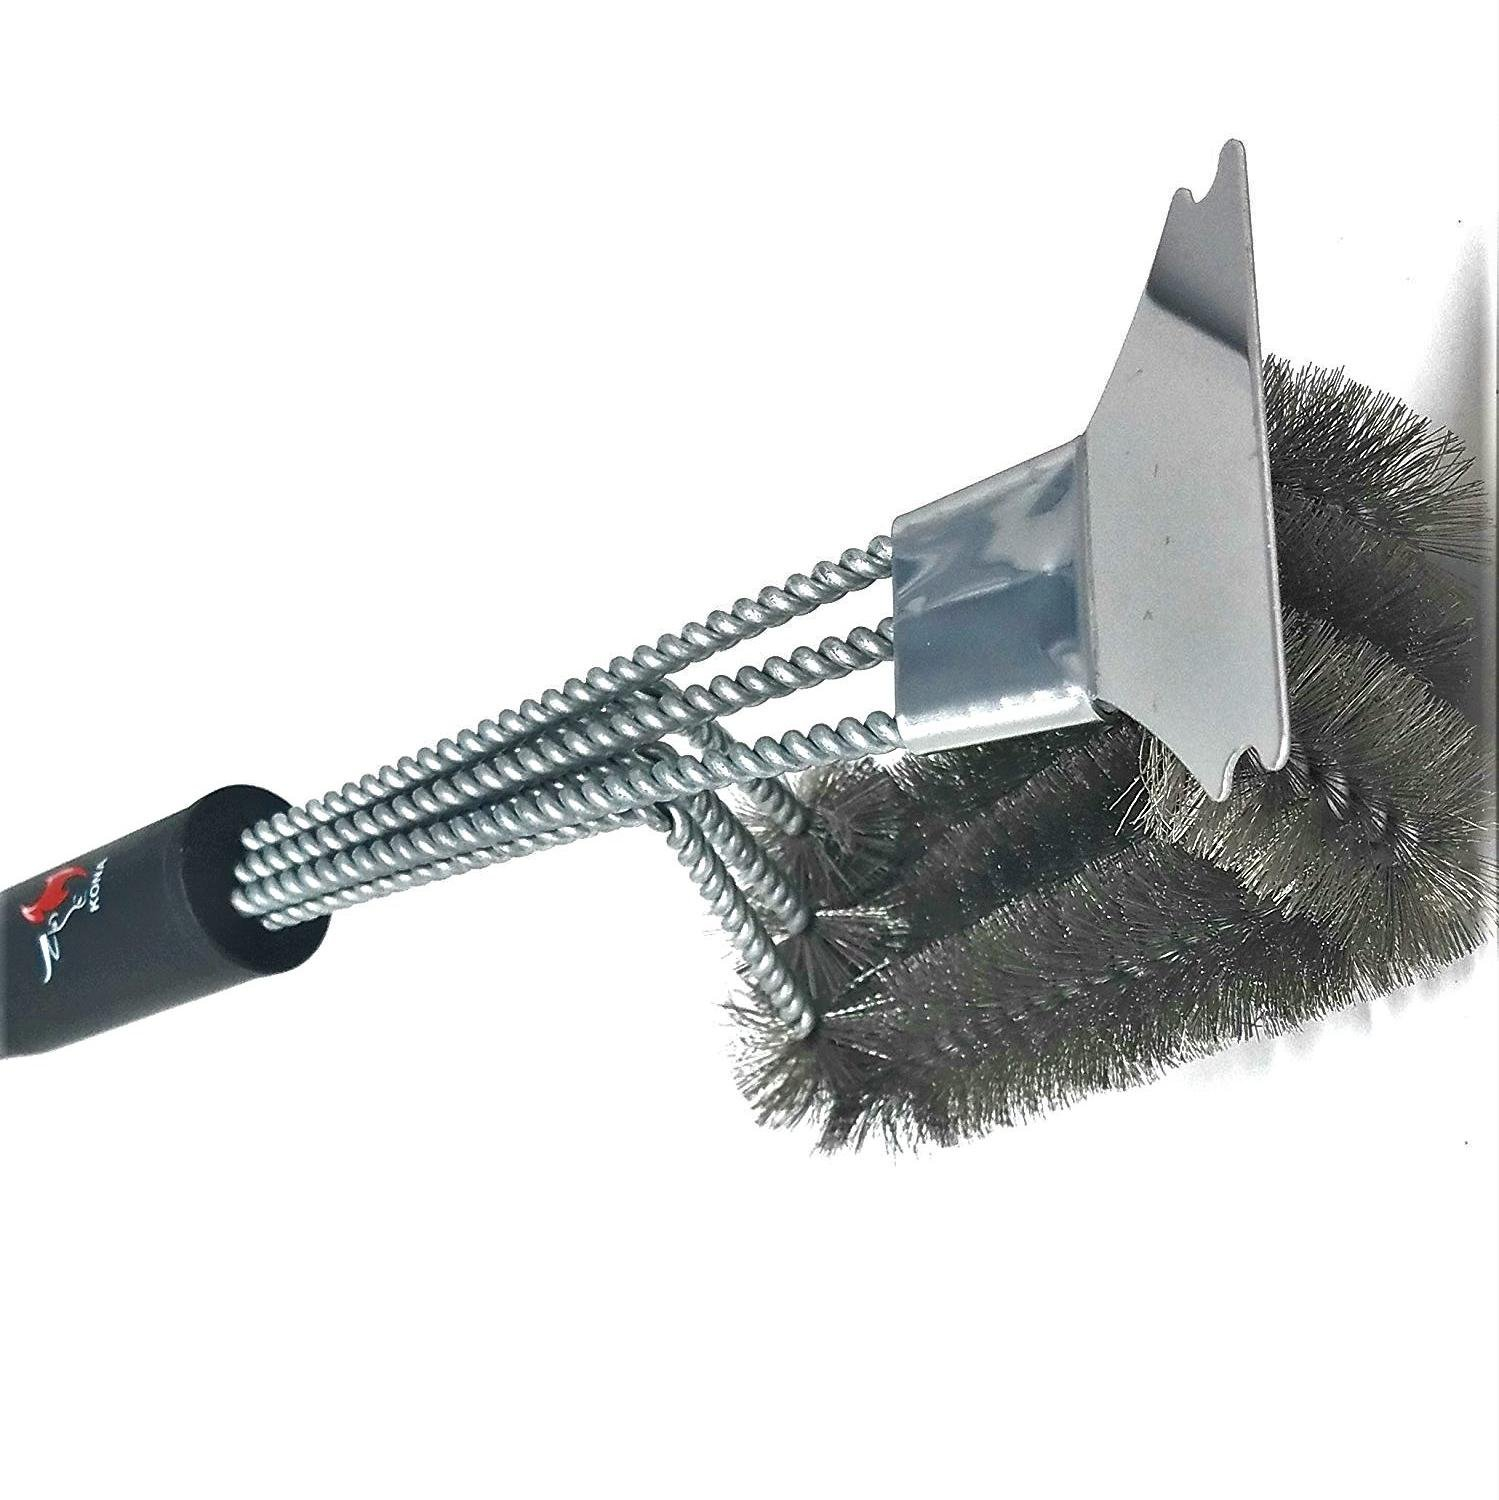 Kona Grill Brush And Scraper ~ 360° Clean Stainless Steel Barbecue Brush With Triple Head Scrubber Cleaner ~ Safe For Porcelain, Ceramic, Steel, Cast Iron ~ Great BBQ Tools Gift